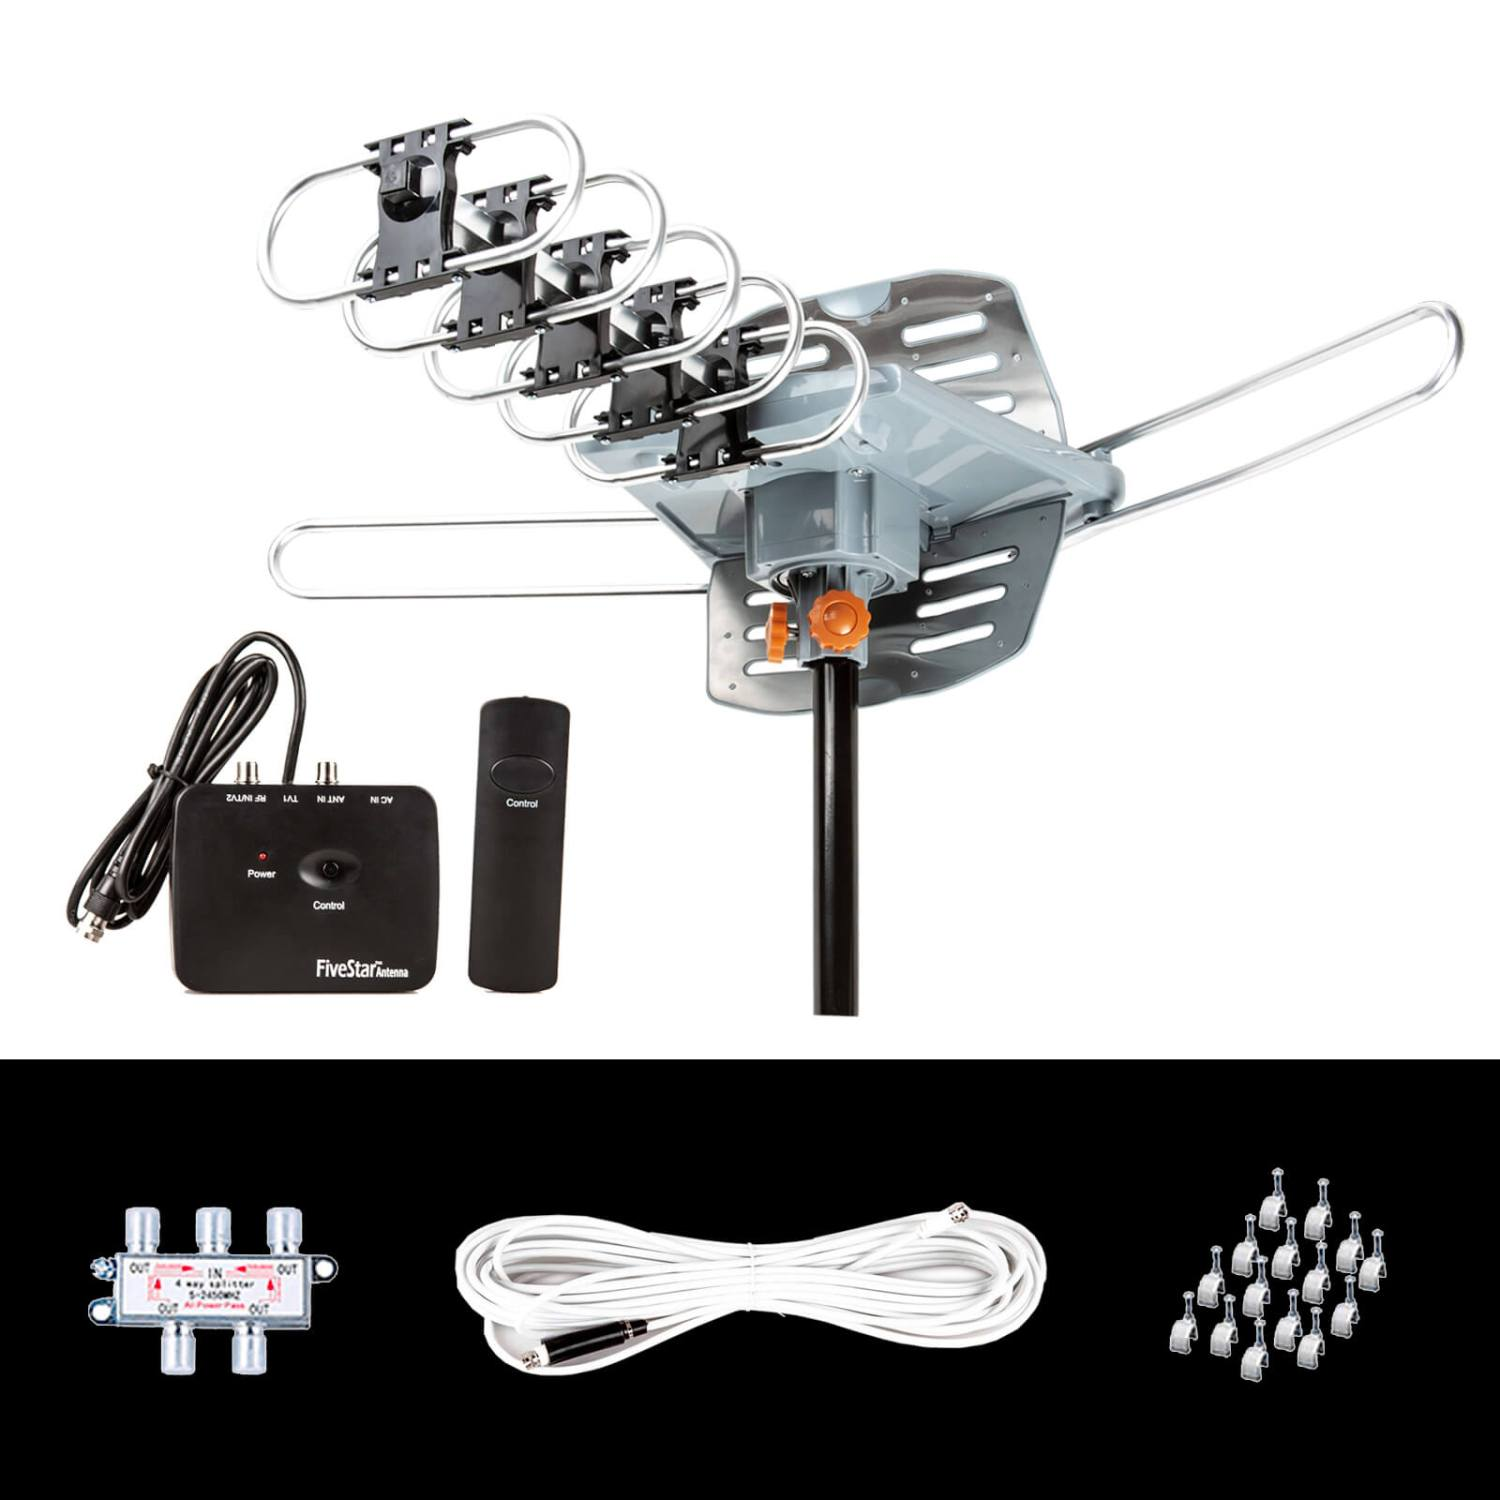 Five Star Outdoor 150 Mile Motorized 360 Degree Rotation OTA Amplified HDTV Antenna for 2 TVs Support - UHF/VHF/1080P Channels Wireless Remote Control - 40FT Coax Cable